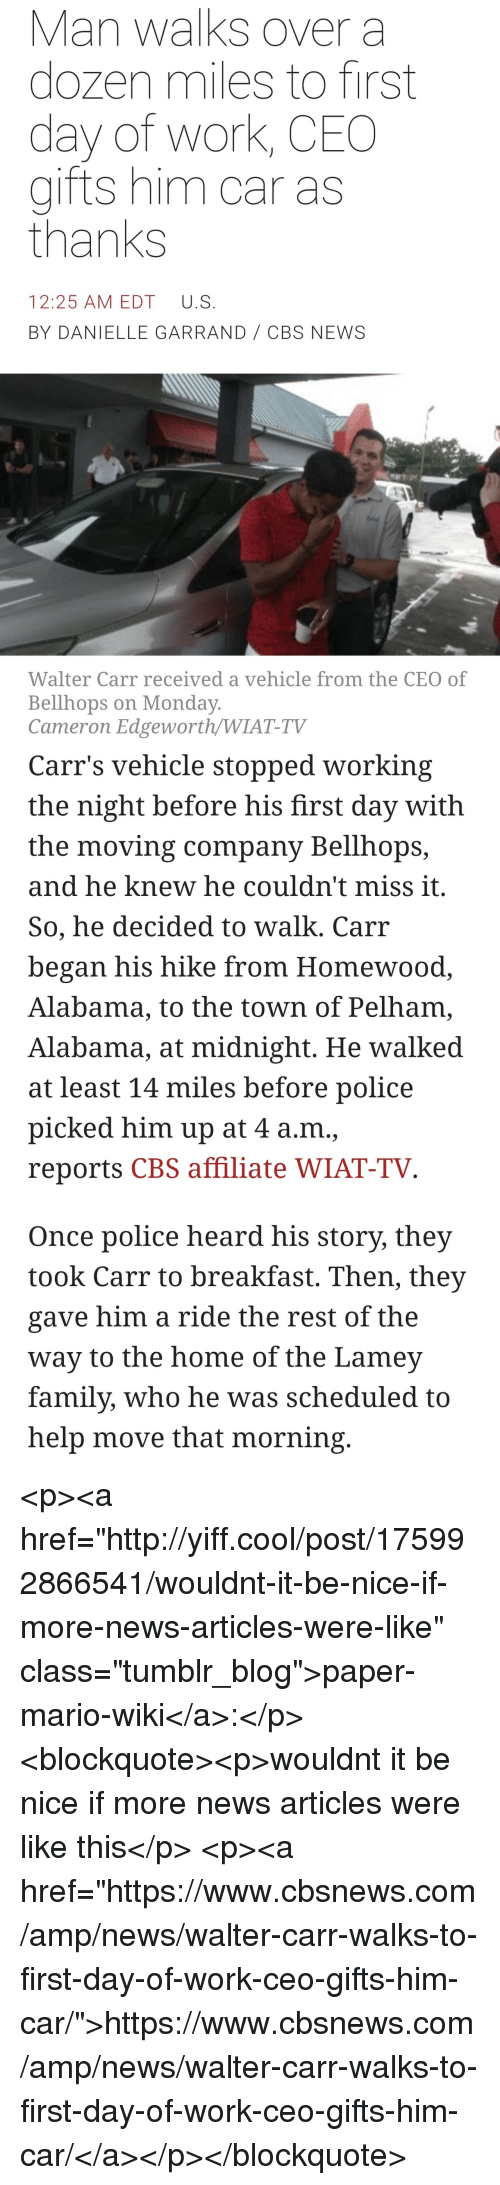 """Family, News, and Police: Man walks over a  dozen miles to first  day of work, CEO  gifts him car as  thanks  12:25 AM EDT U.S  BY DANIELLE GARRAND CBS NEWS  Walter Carr received a vehicle from the CEO of  Bellhops on Monday  Cameron Edgeworth/WIAT-TV   Carr's vehicle stopped working  the night before his first day with  the moving company Bellhops,  and he knew he couldn't miss it  So, he decided to walk. Carr  began his hike from Homewood  Alabama, to the town of Pelham,  Alabama, at midnight. He walked  at least 14 miles before police  picked him up at 4 a.m.,  reports CBS affiliate WIAT-TV  Once police heard his story, they  took Carr to breakfast. Then, they  gave him a ride the rest of the  way to the home of the Lamev  family, who he was scheduled to  help move that morning <p><a href=""""http://yiff.cool/post/175992866541/wouldnt-it-be-nice-if-more-news-articles-were-like"""" class=""""tumblr_blog"""">paper-mario-wiki</a>:</p>  <blockquote><p>wouldnt it be nice if more news articles were like this</p>  <p><a href=""""https://www.cbsnews.com/amp/news/walter-carr-walks-to-first-day-of-work-ceo-gifts-him-car/"""">https://www.cbsnews.com/amp/news/walter-carr-walks-to-first-day-of-work-ceo-gifts-him-car/</a></p></blockquote>"""